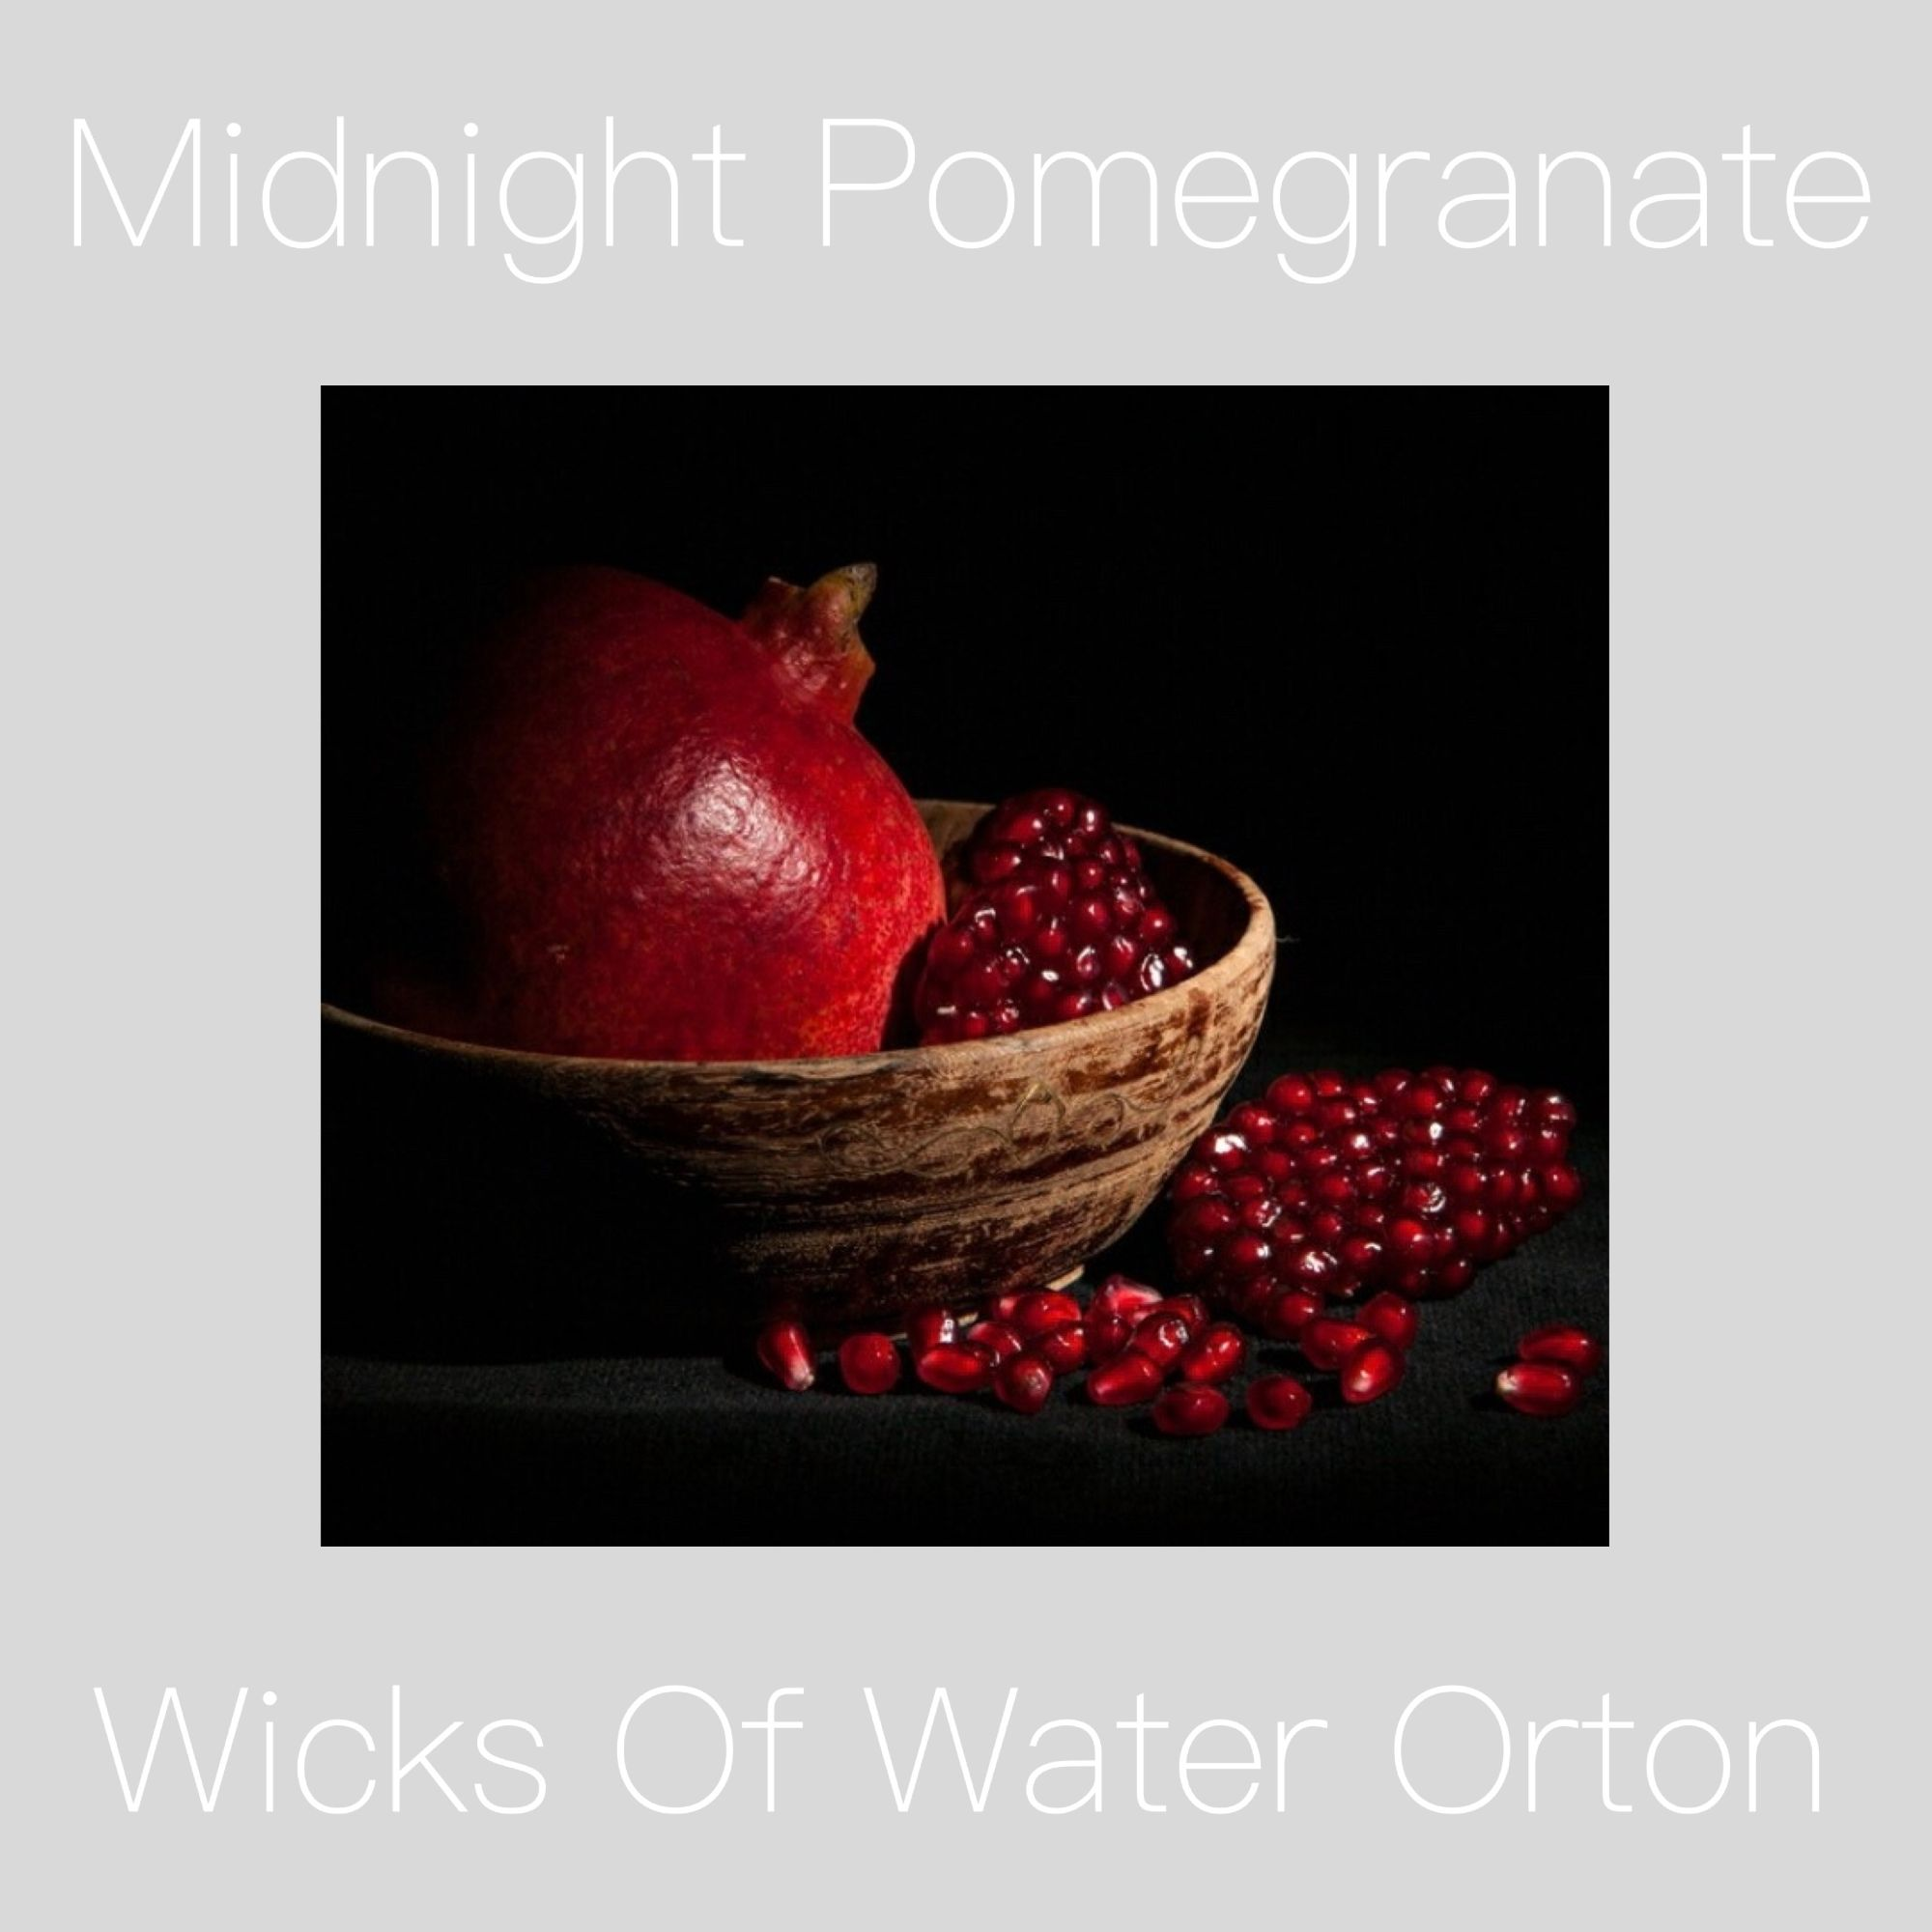 Midnight Pomegranate